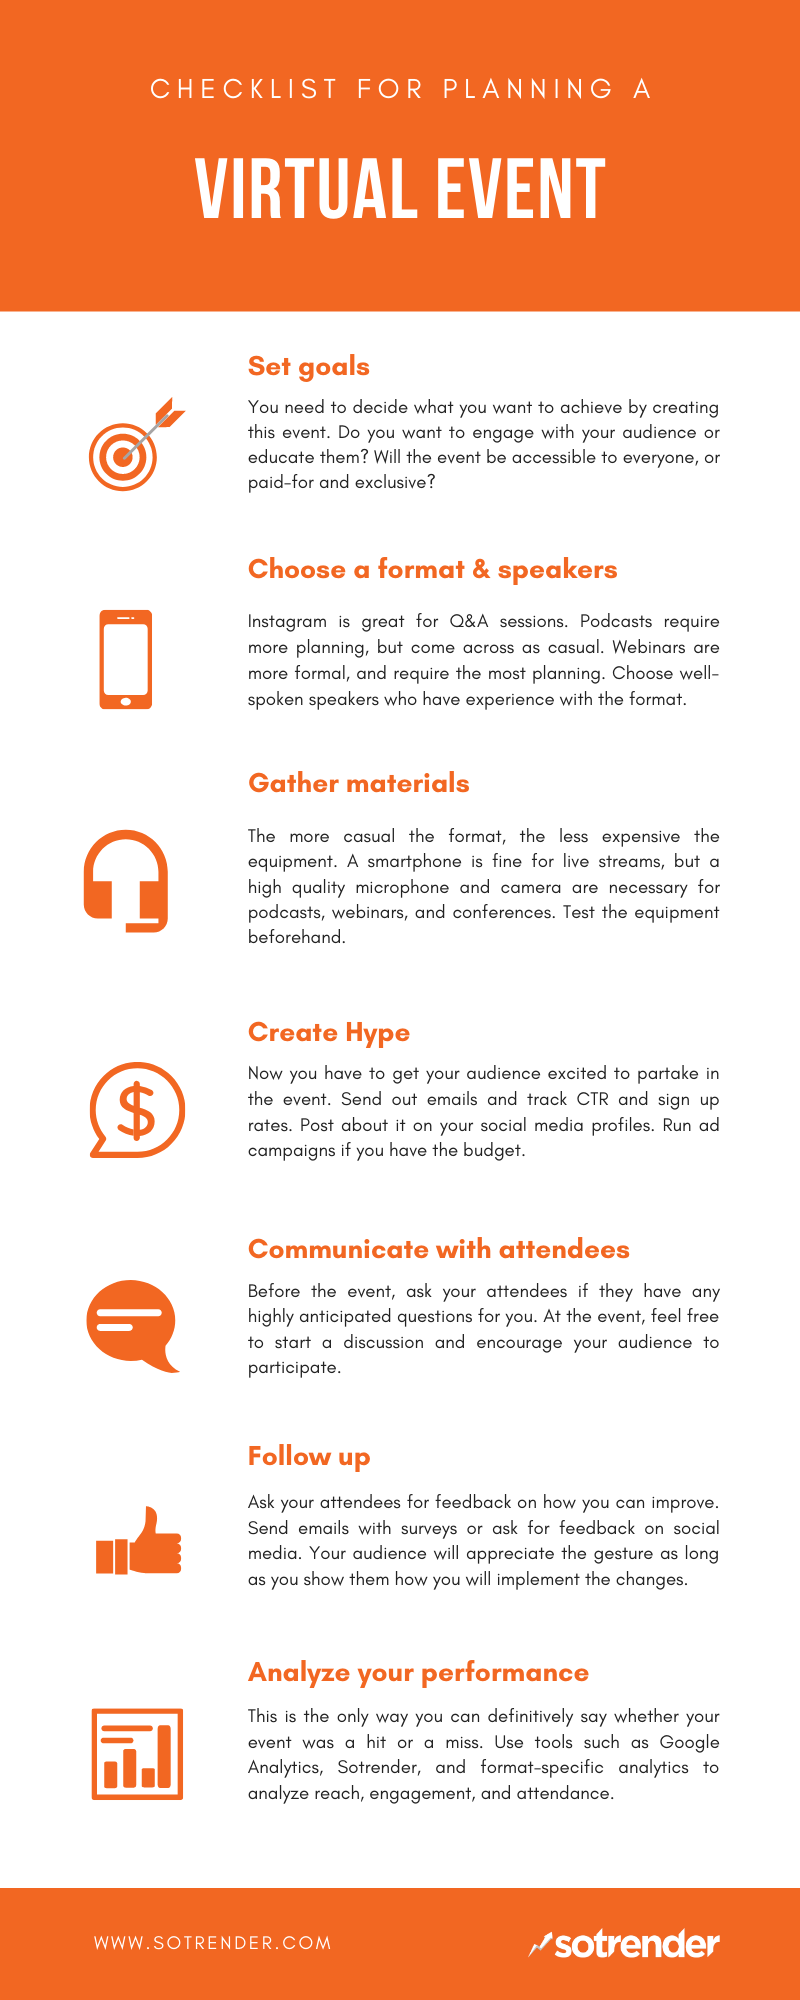 Virtual event planning guide by Sotrender